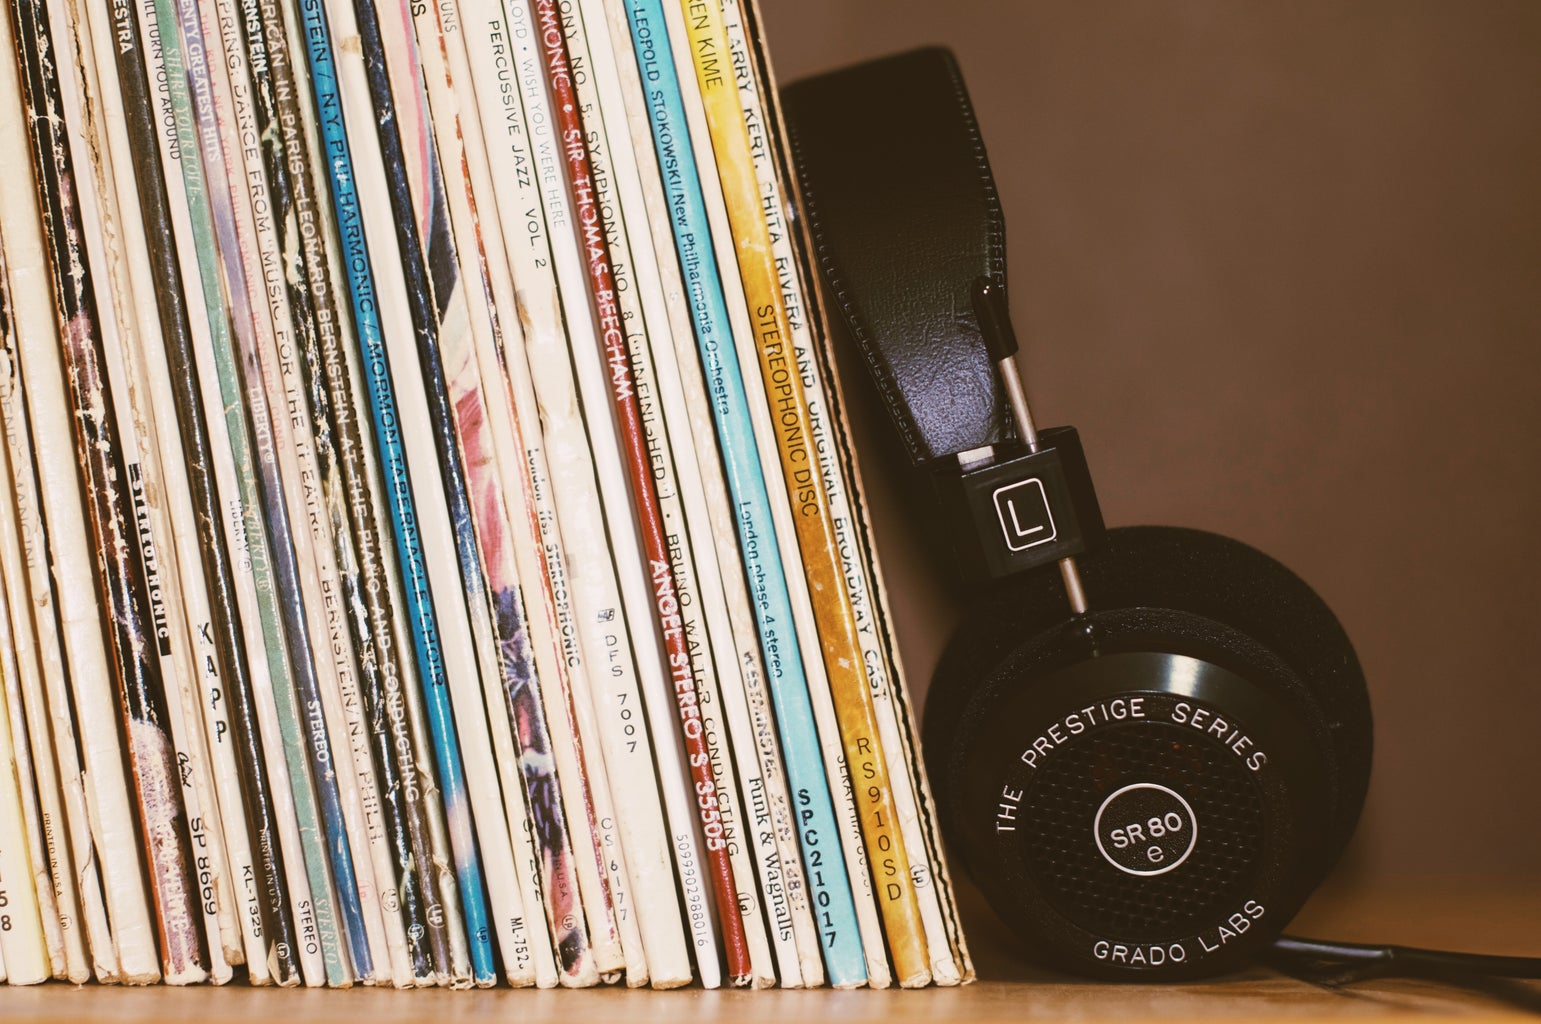 headphones leaning against record albums